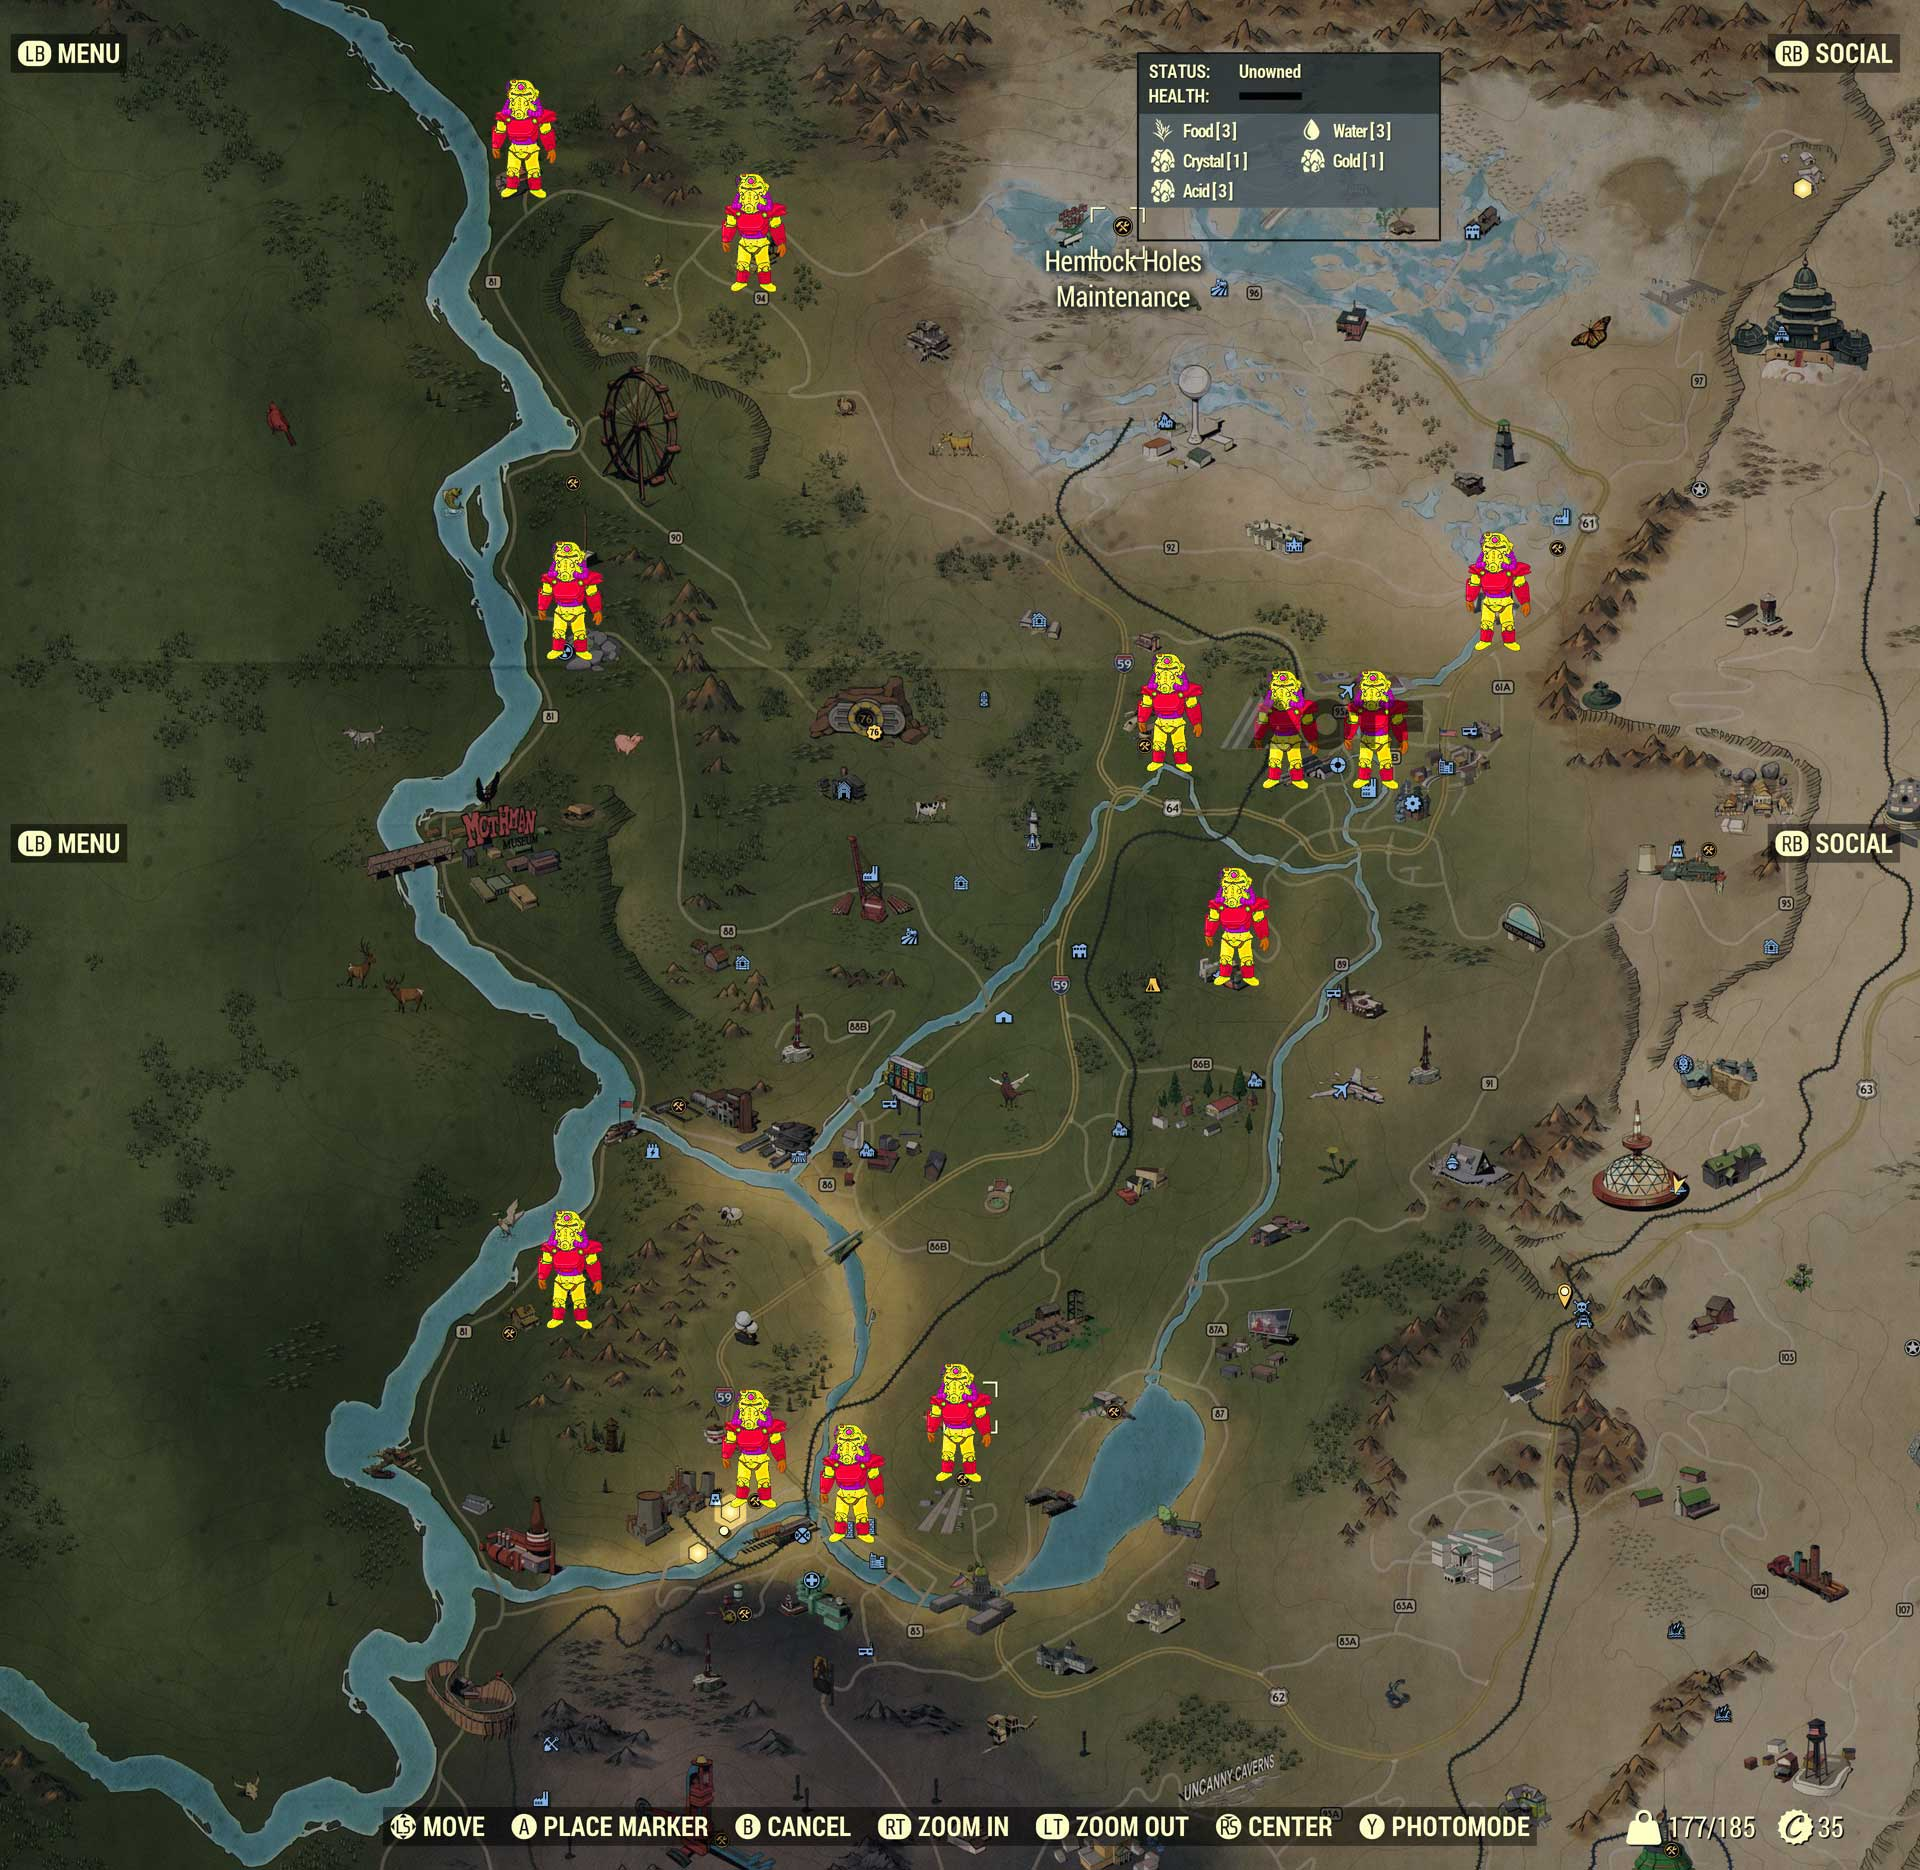 Fallout 76 All Power Armor Locations - Attack of the Fanboy